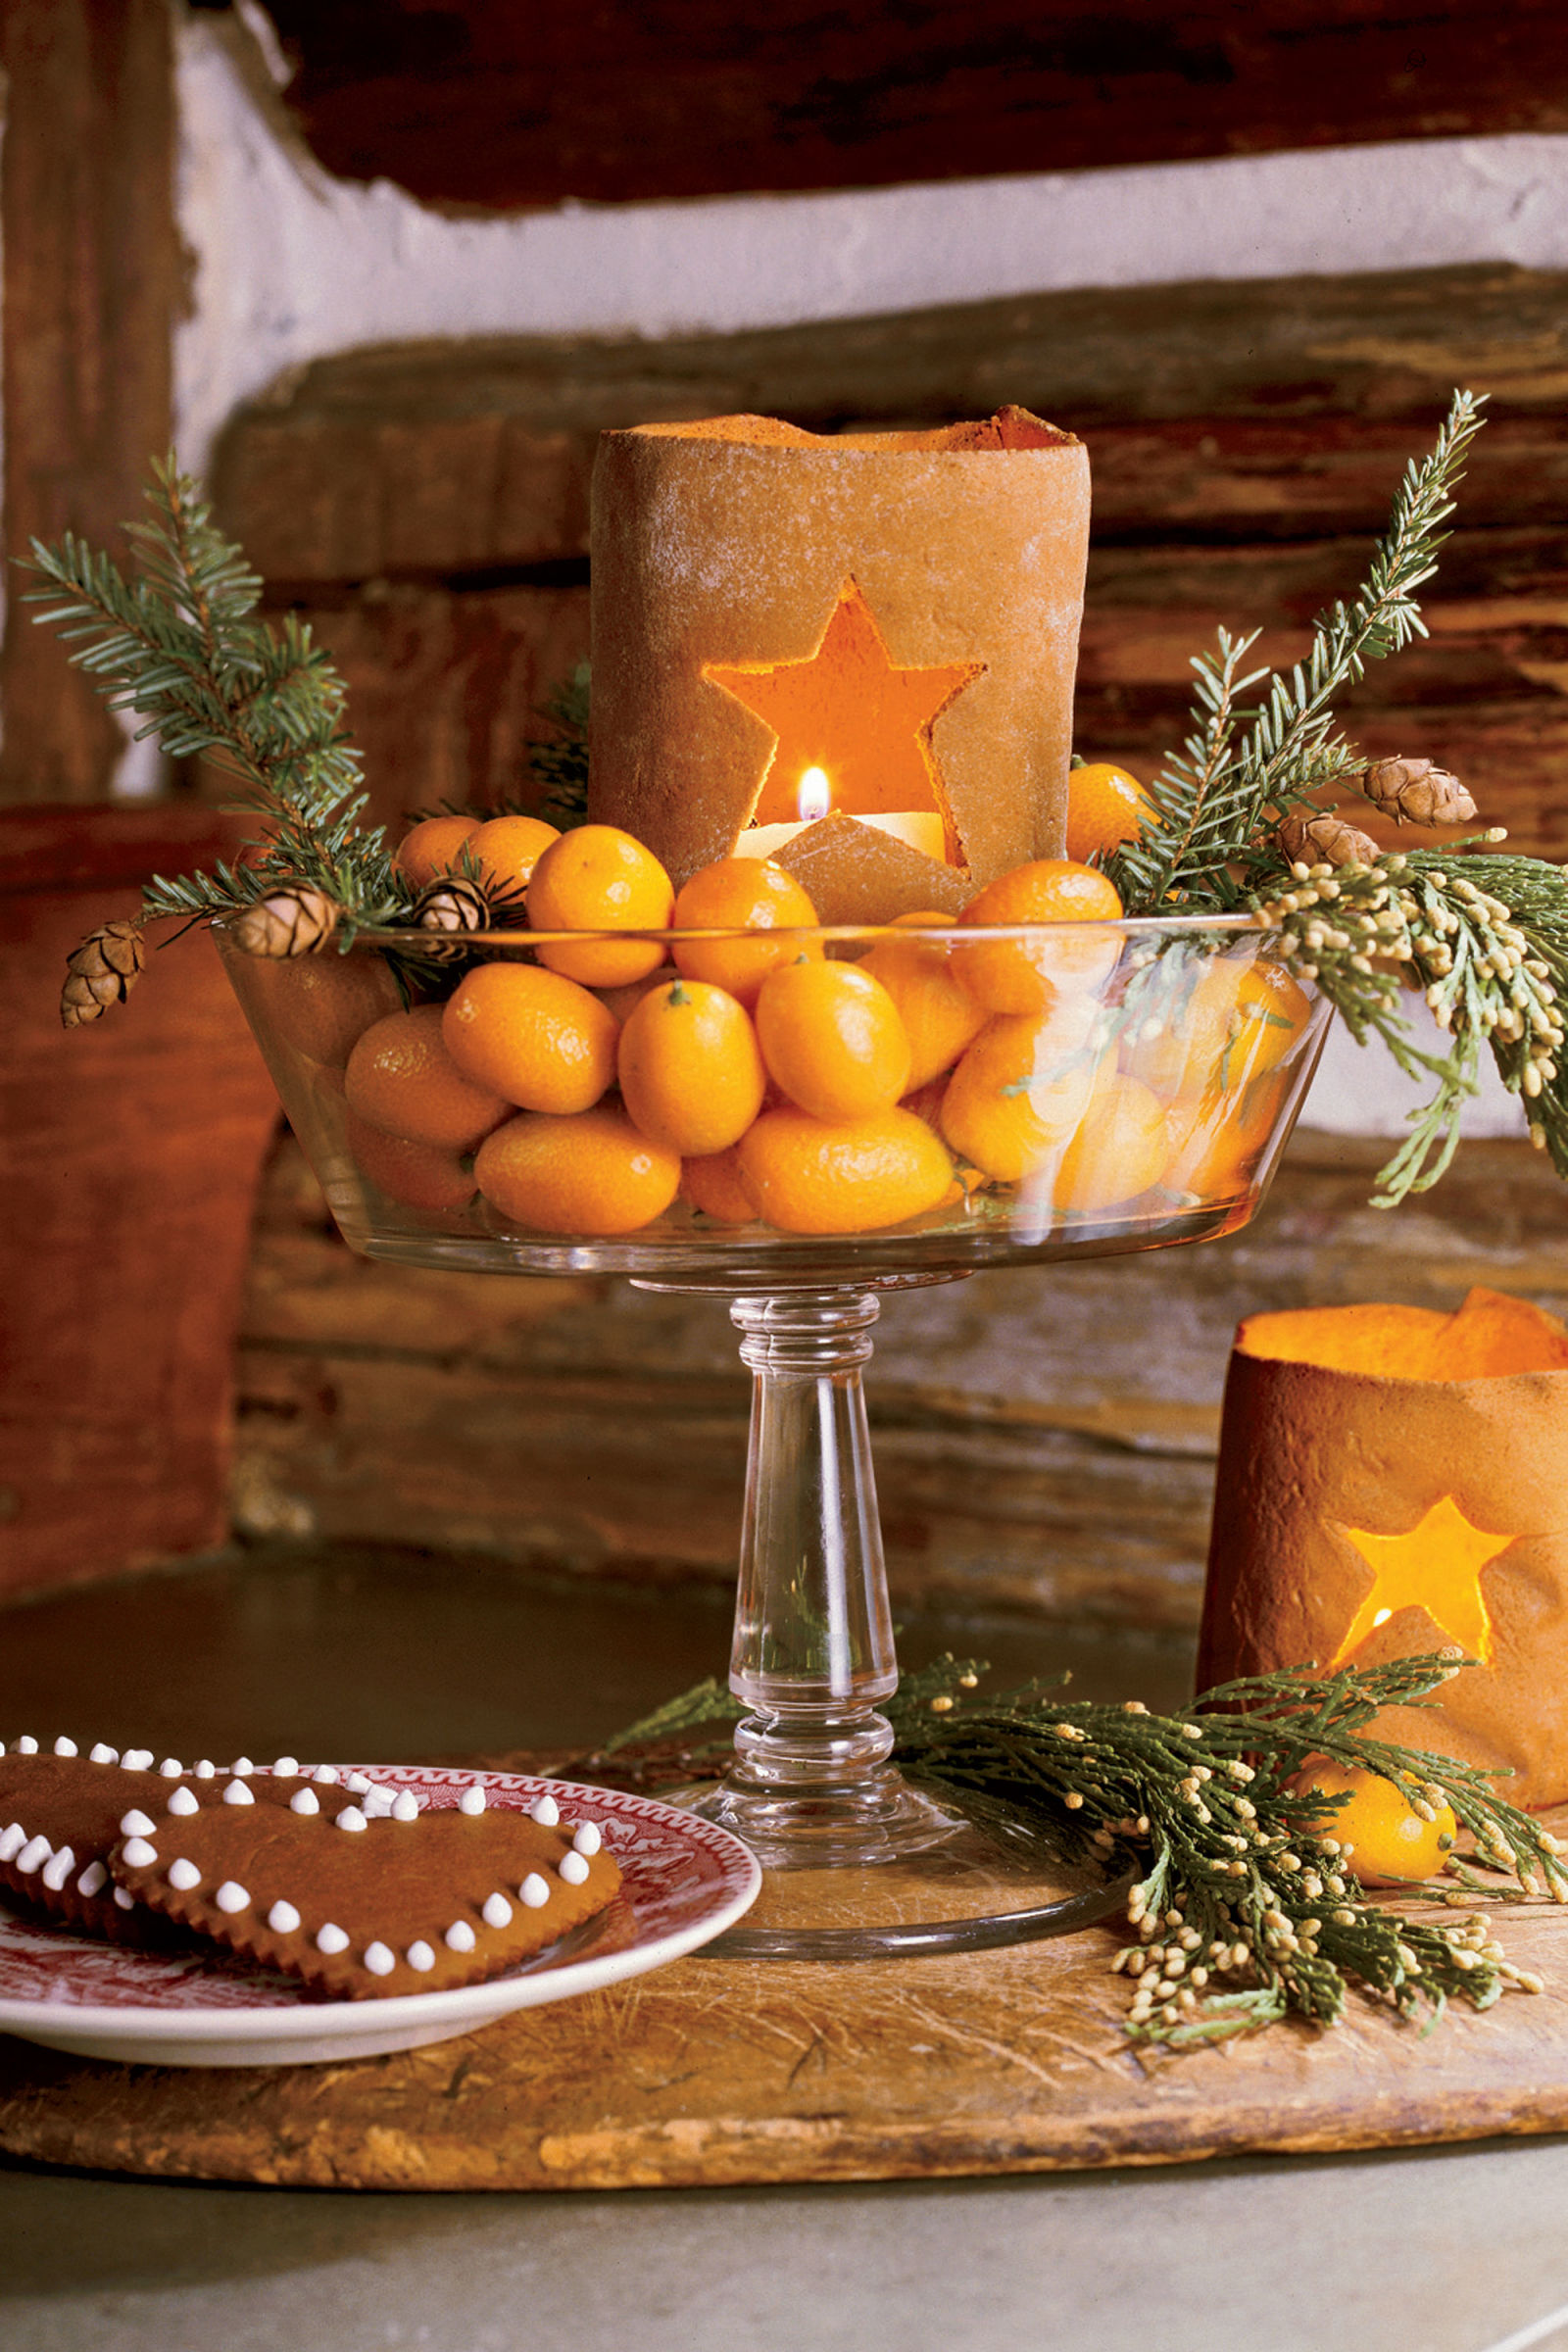 Diy clementine centerpiece for christmas